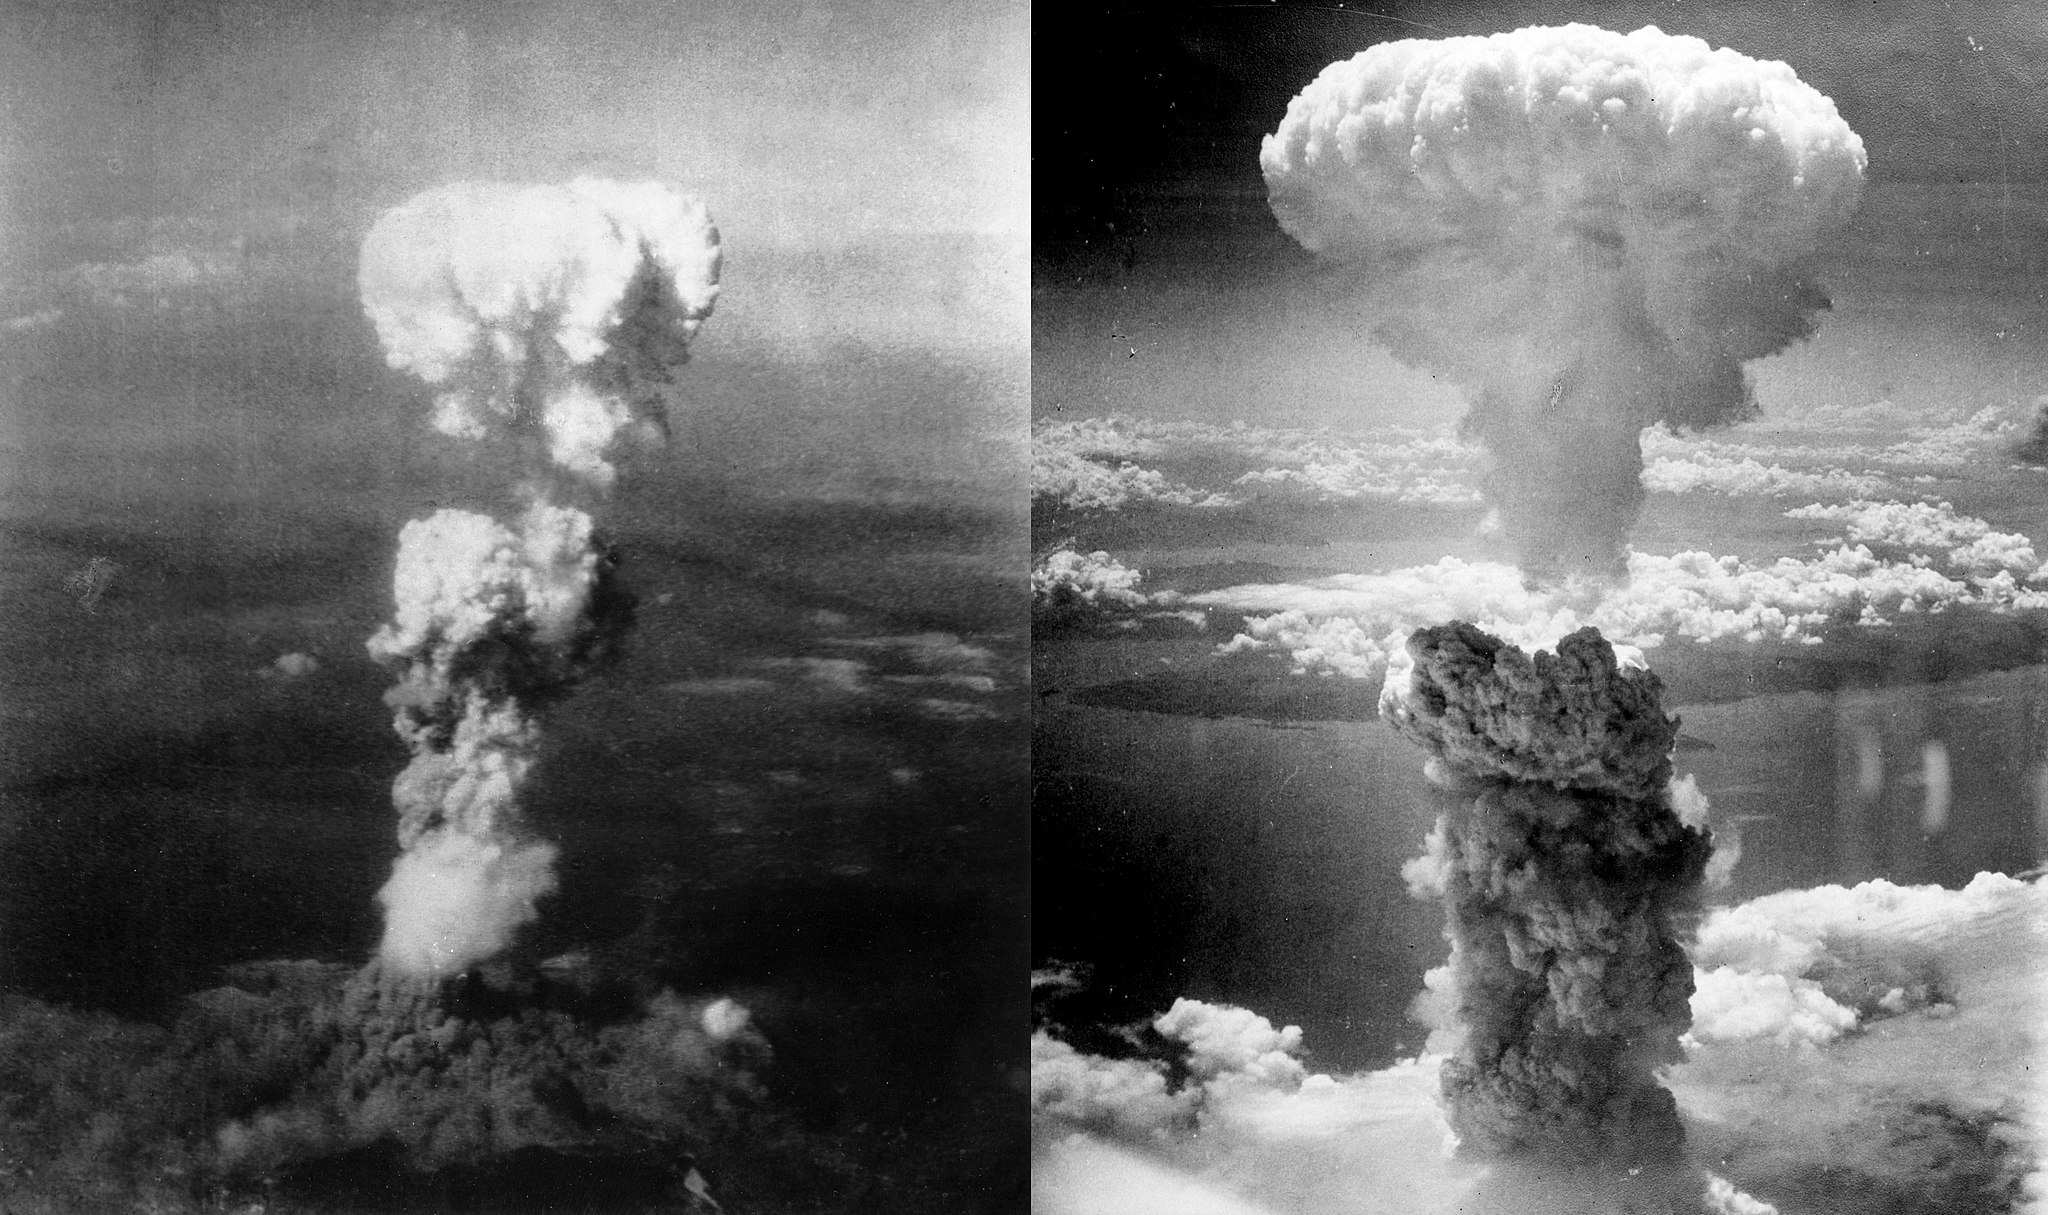 An atomic bomb going off as a black and white photograph